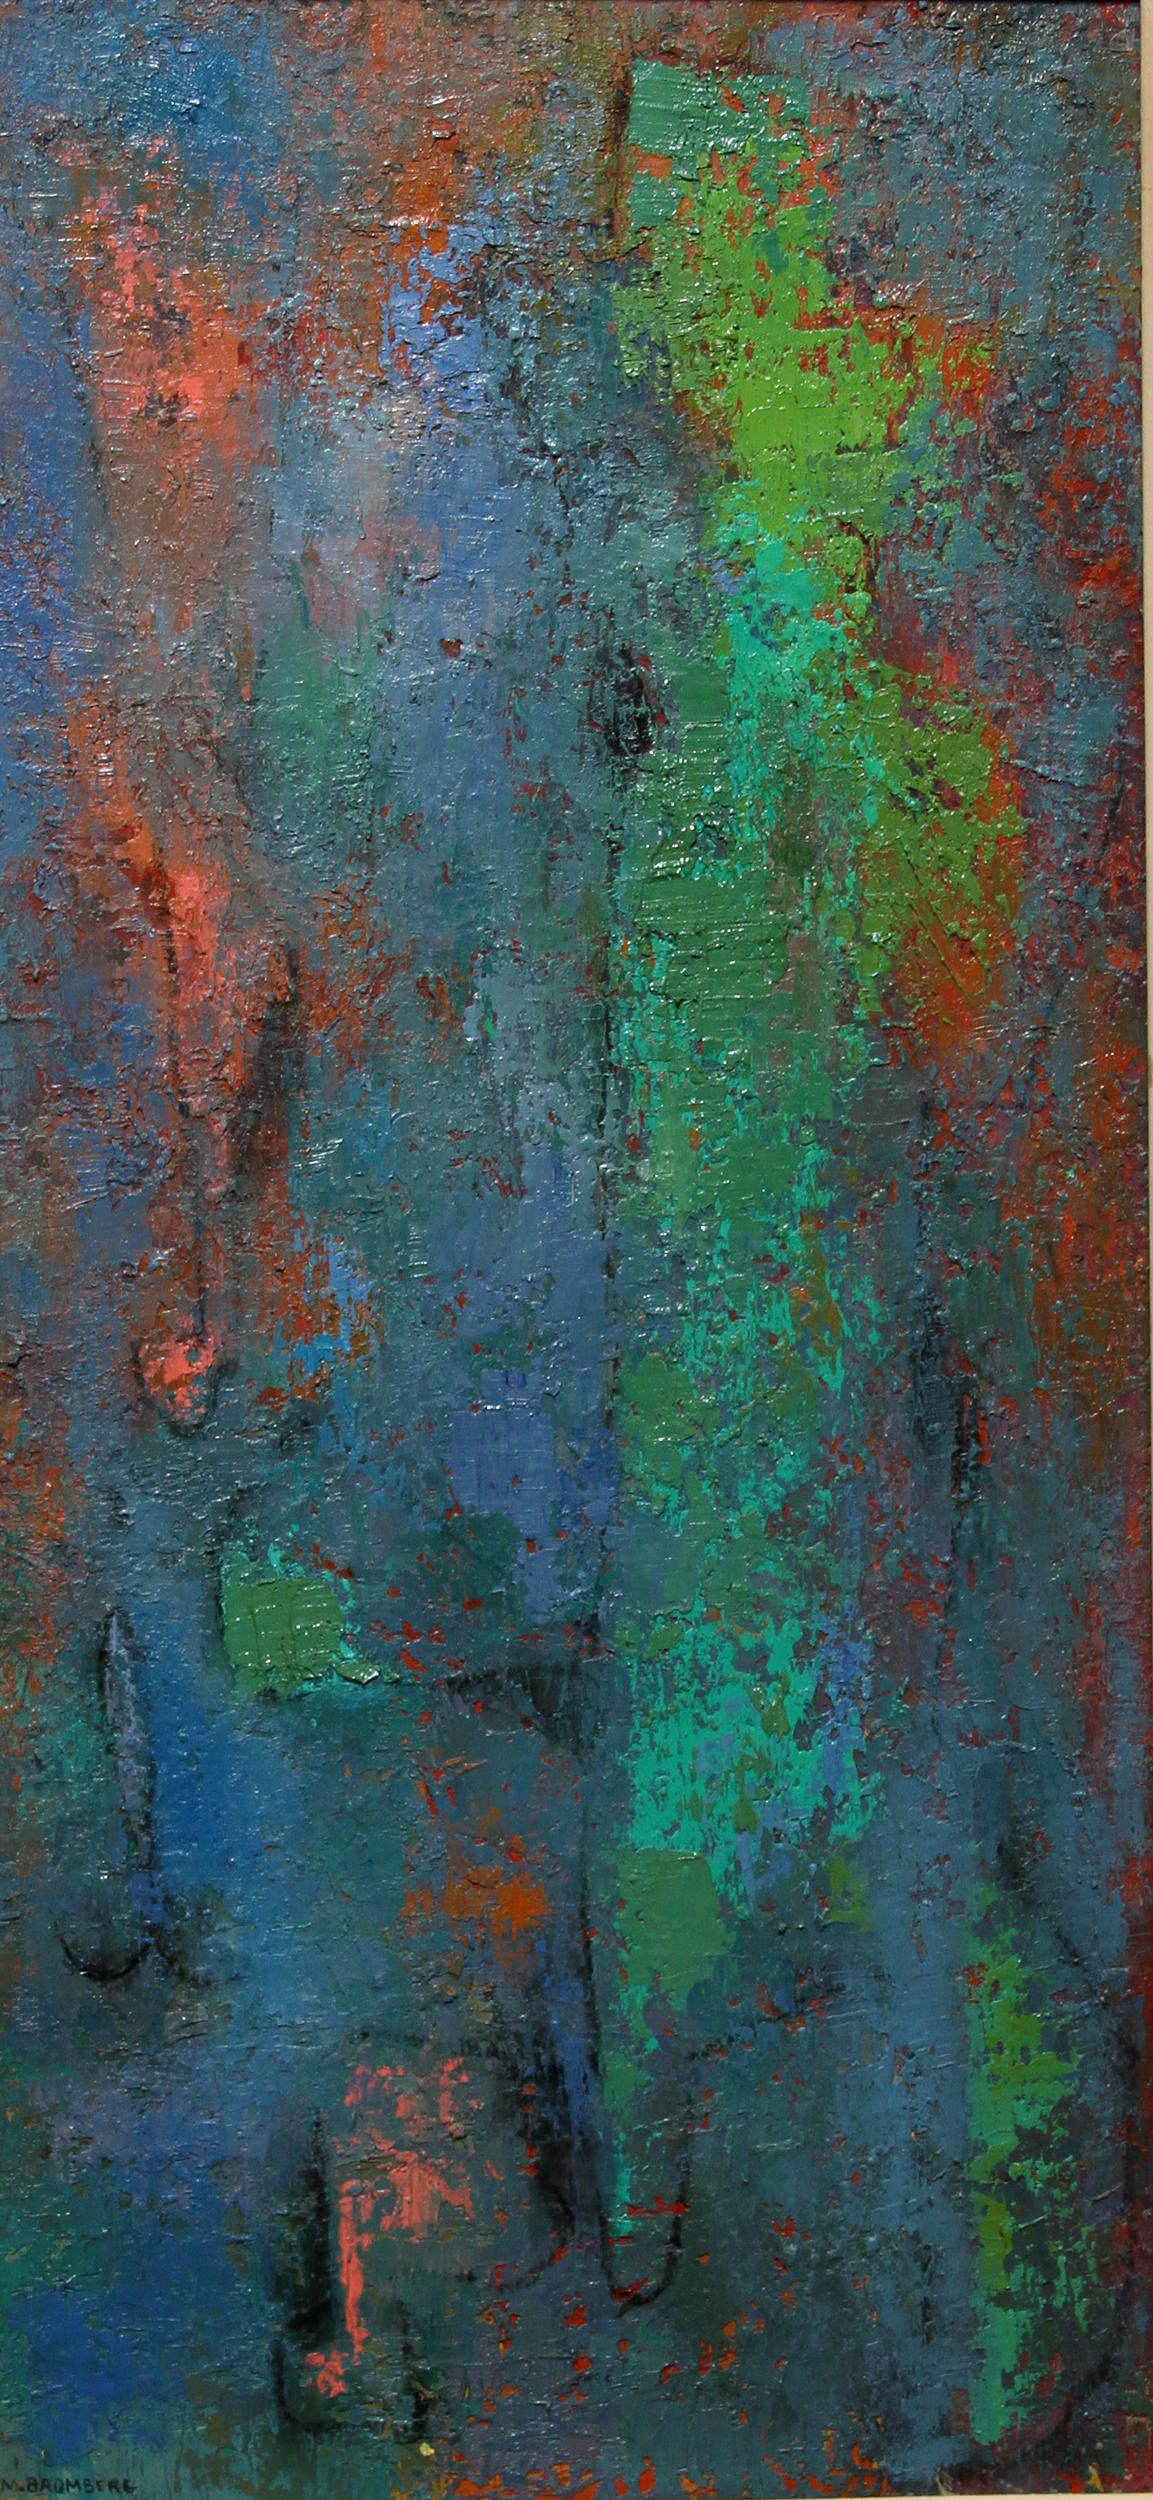 Miriam Bromberg, Abstract in Blue, Green, and Red, Oil Painting